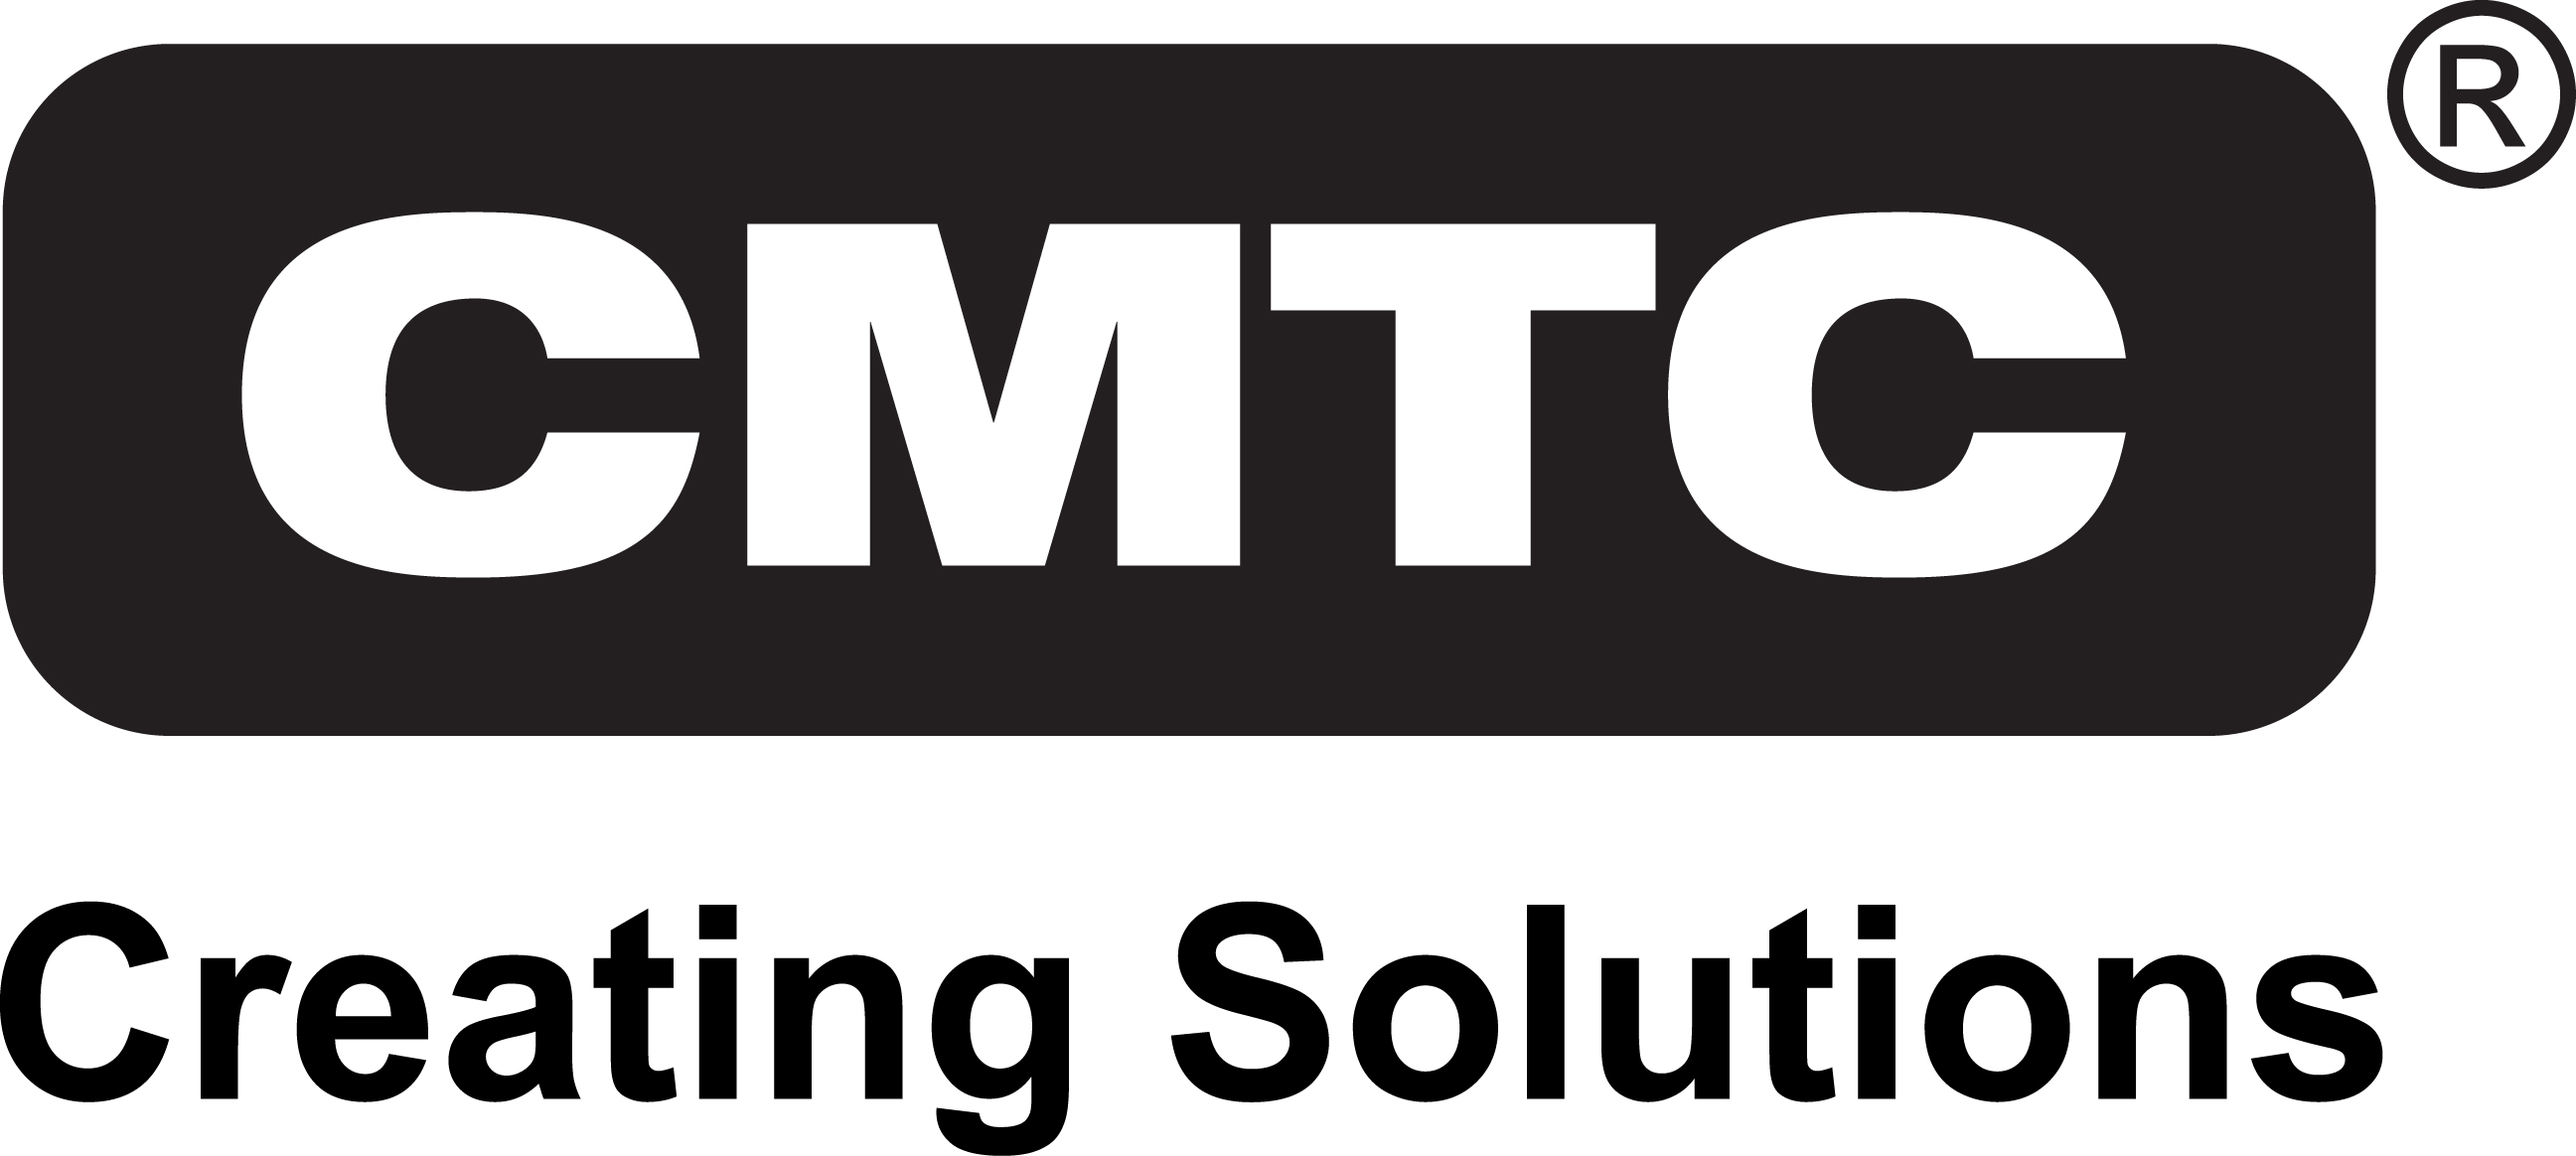 cmtc-creating-solutionslogo